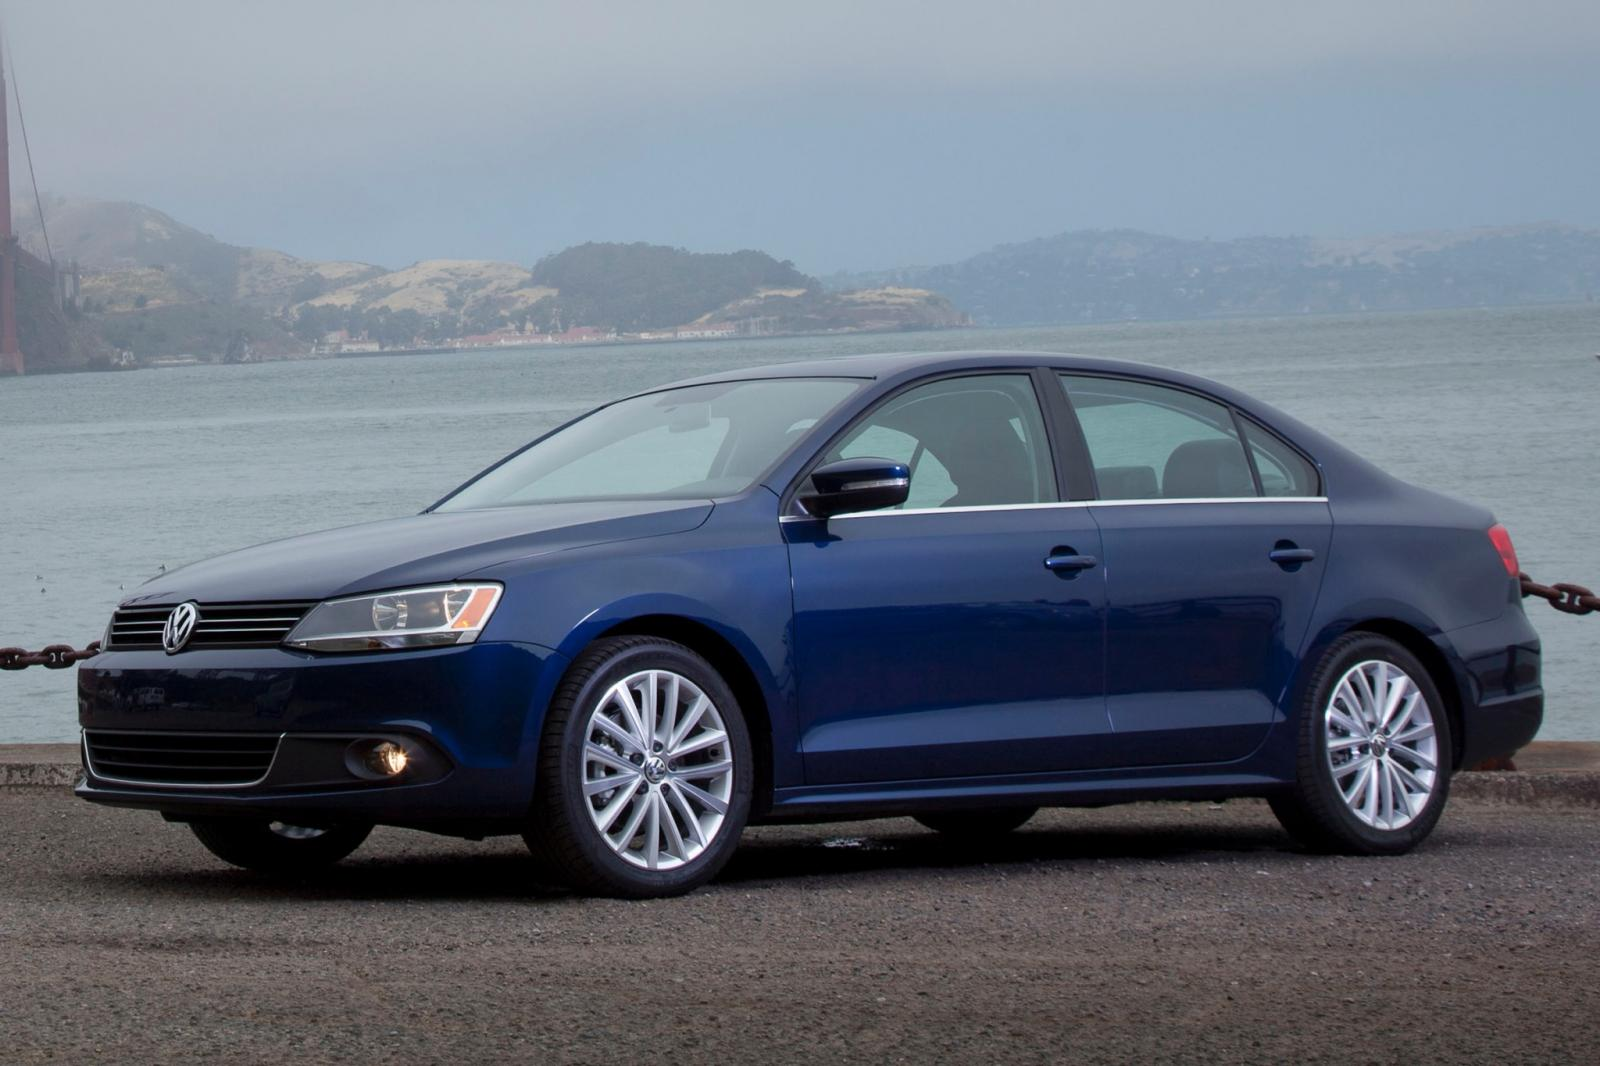 2011 volkswagen jetta information and photos zombiedrive. Black Bedroom Furniture Sets. Home Design Ideas